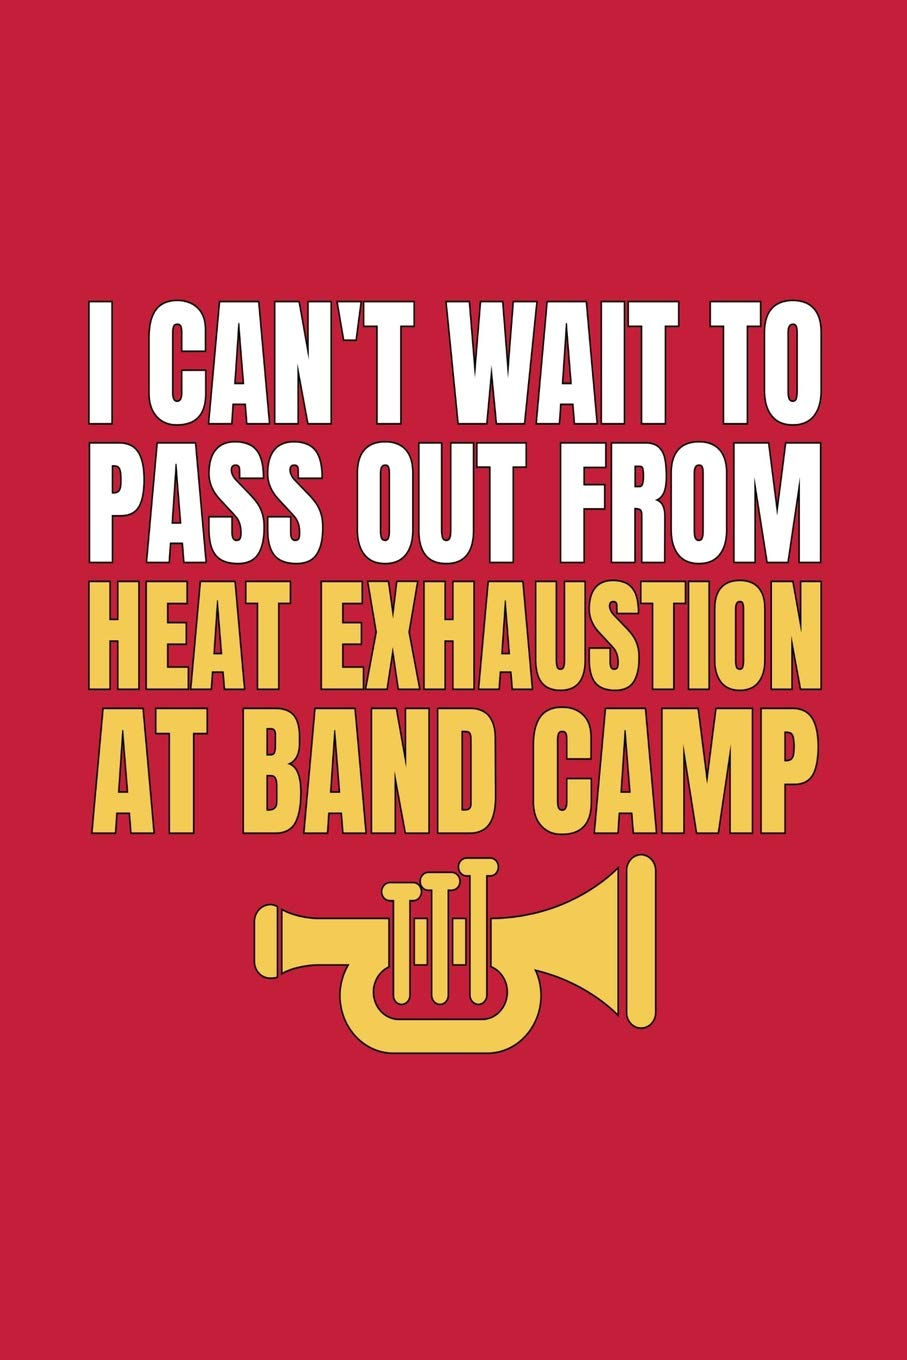 I Can't Wait to Pass Out from Heat Exhaustion at Band Camp